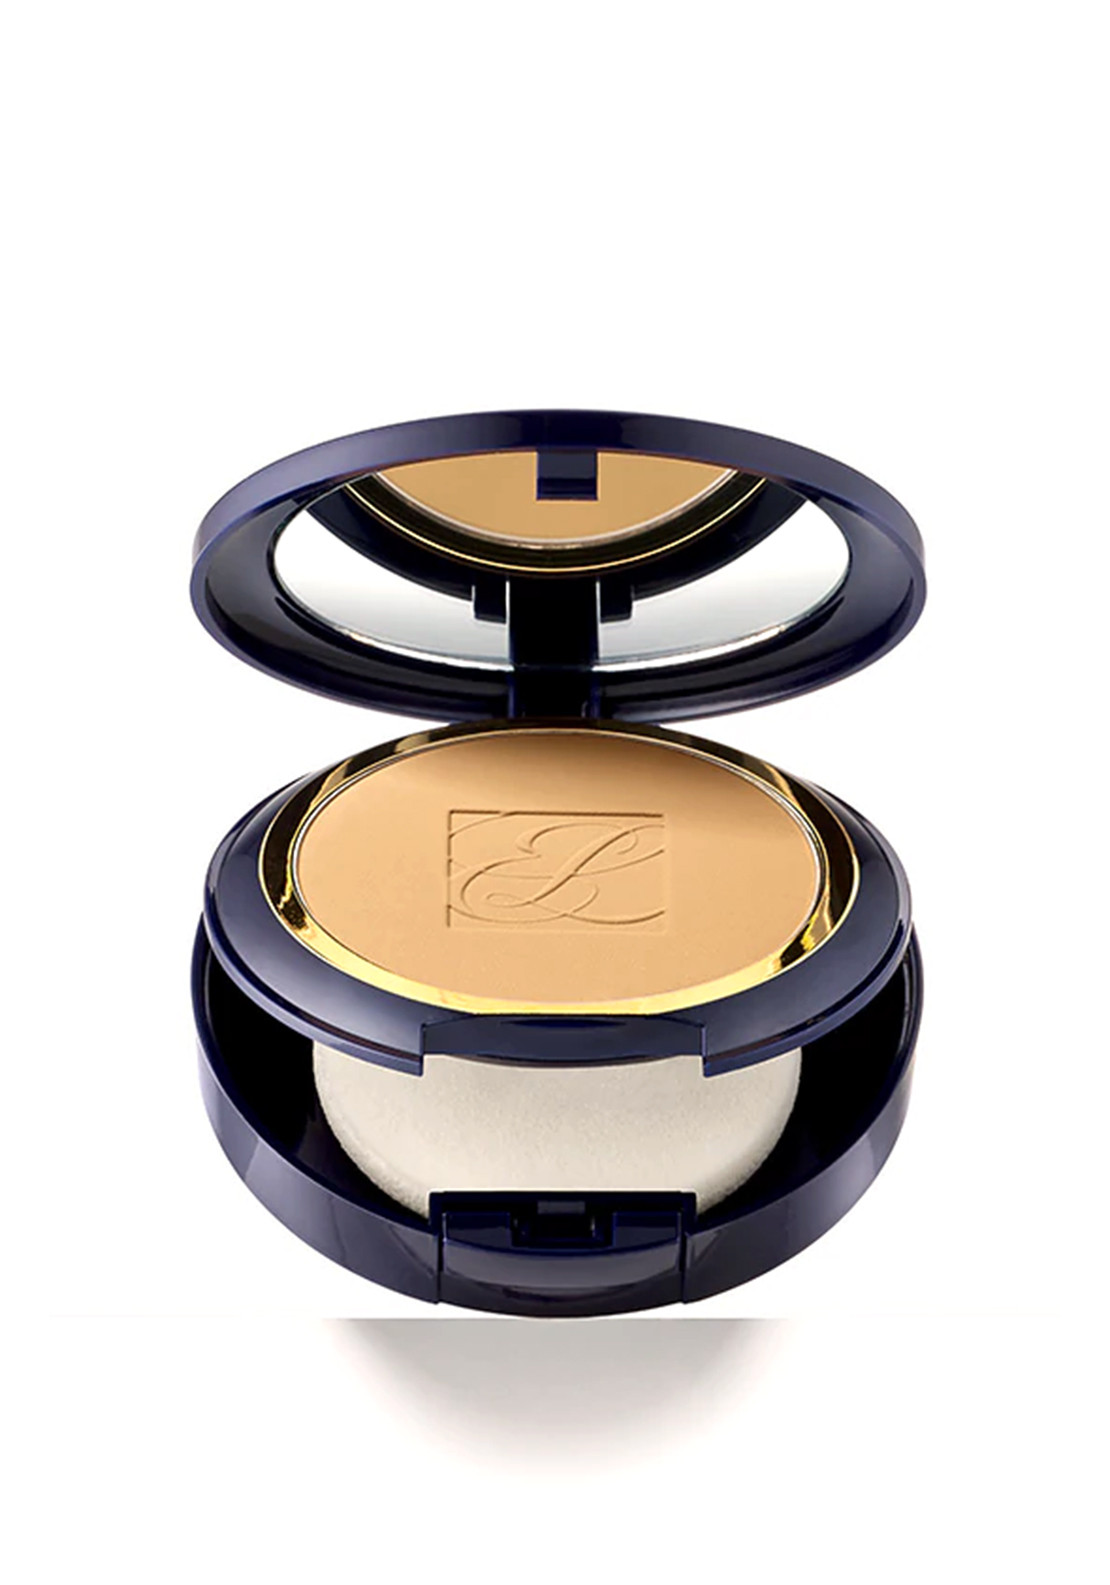 Estee Lauder Double Wear Stay In Place Powder Makeup, Pebble